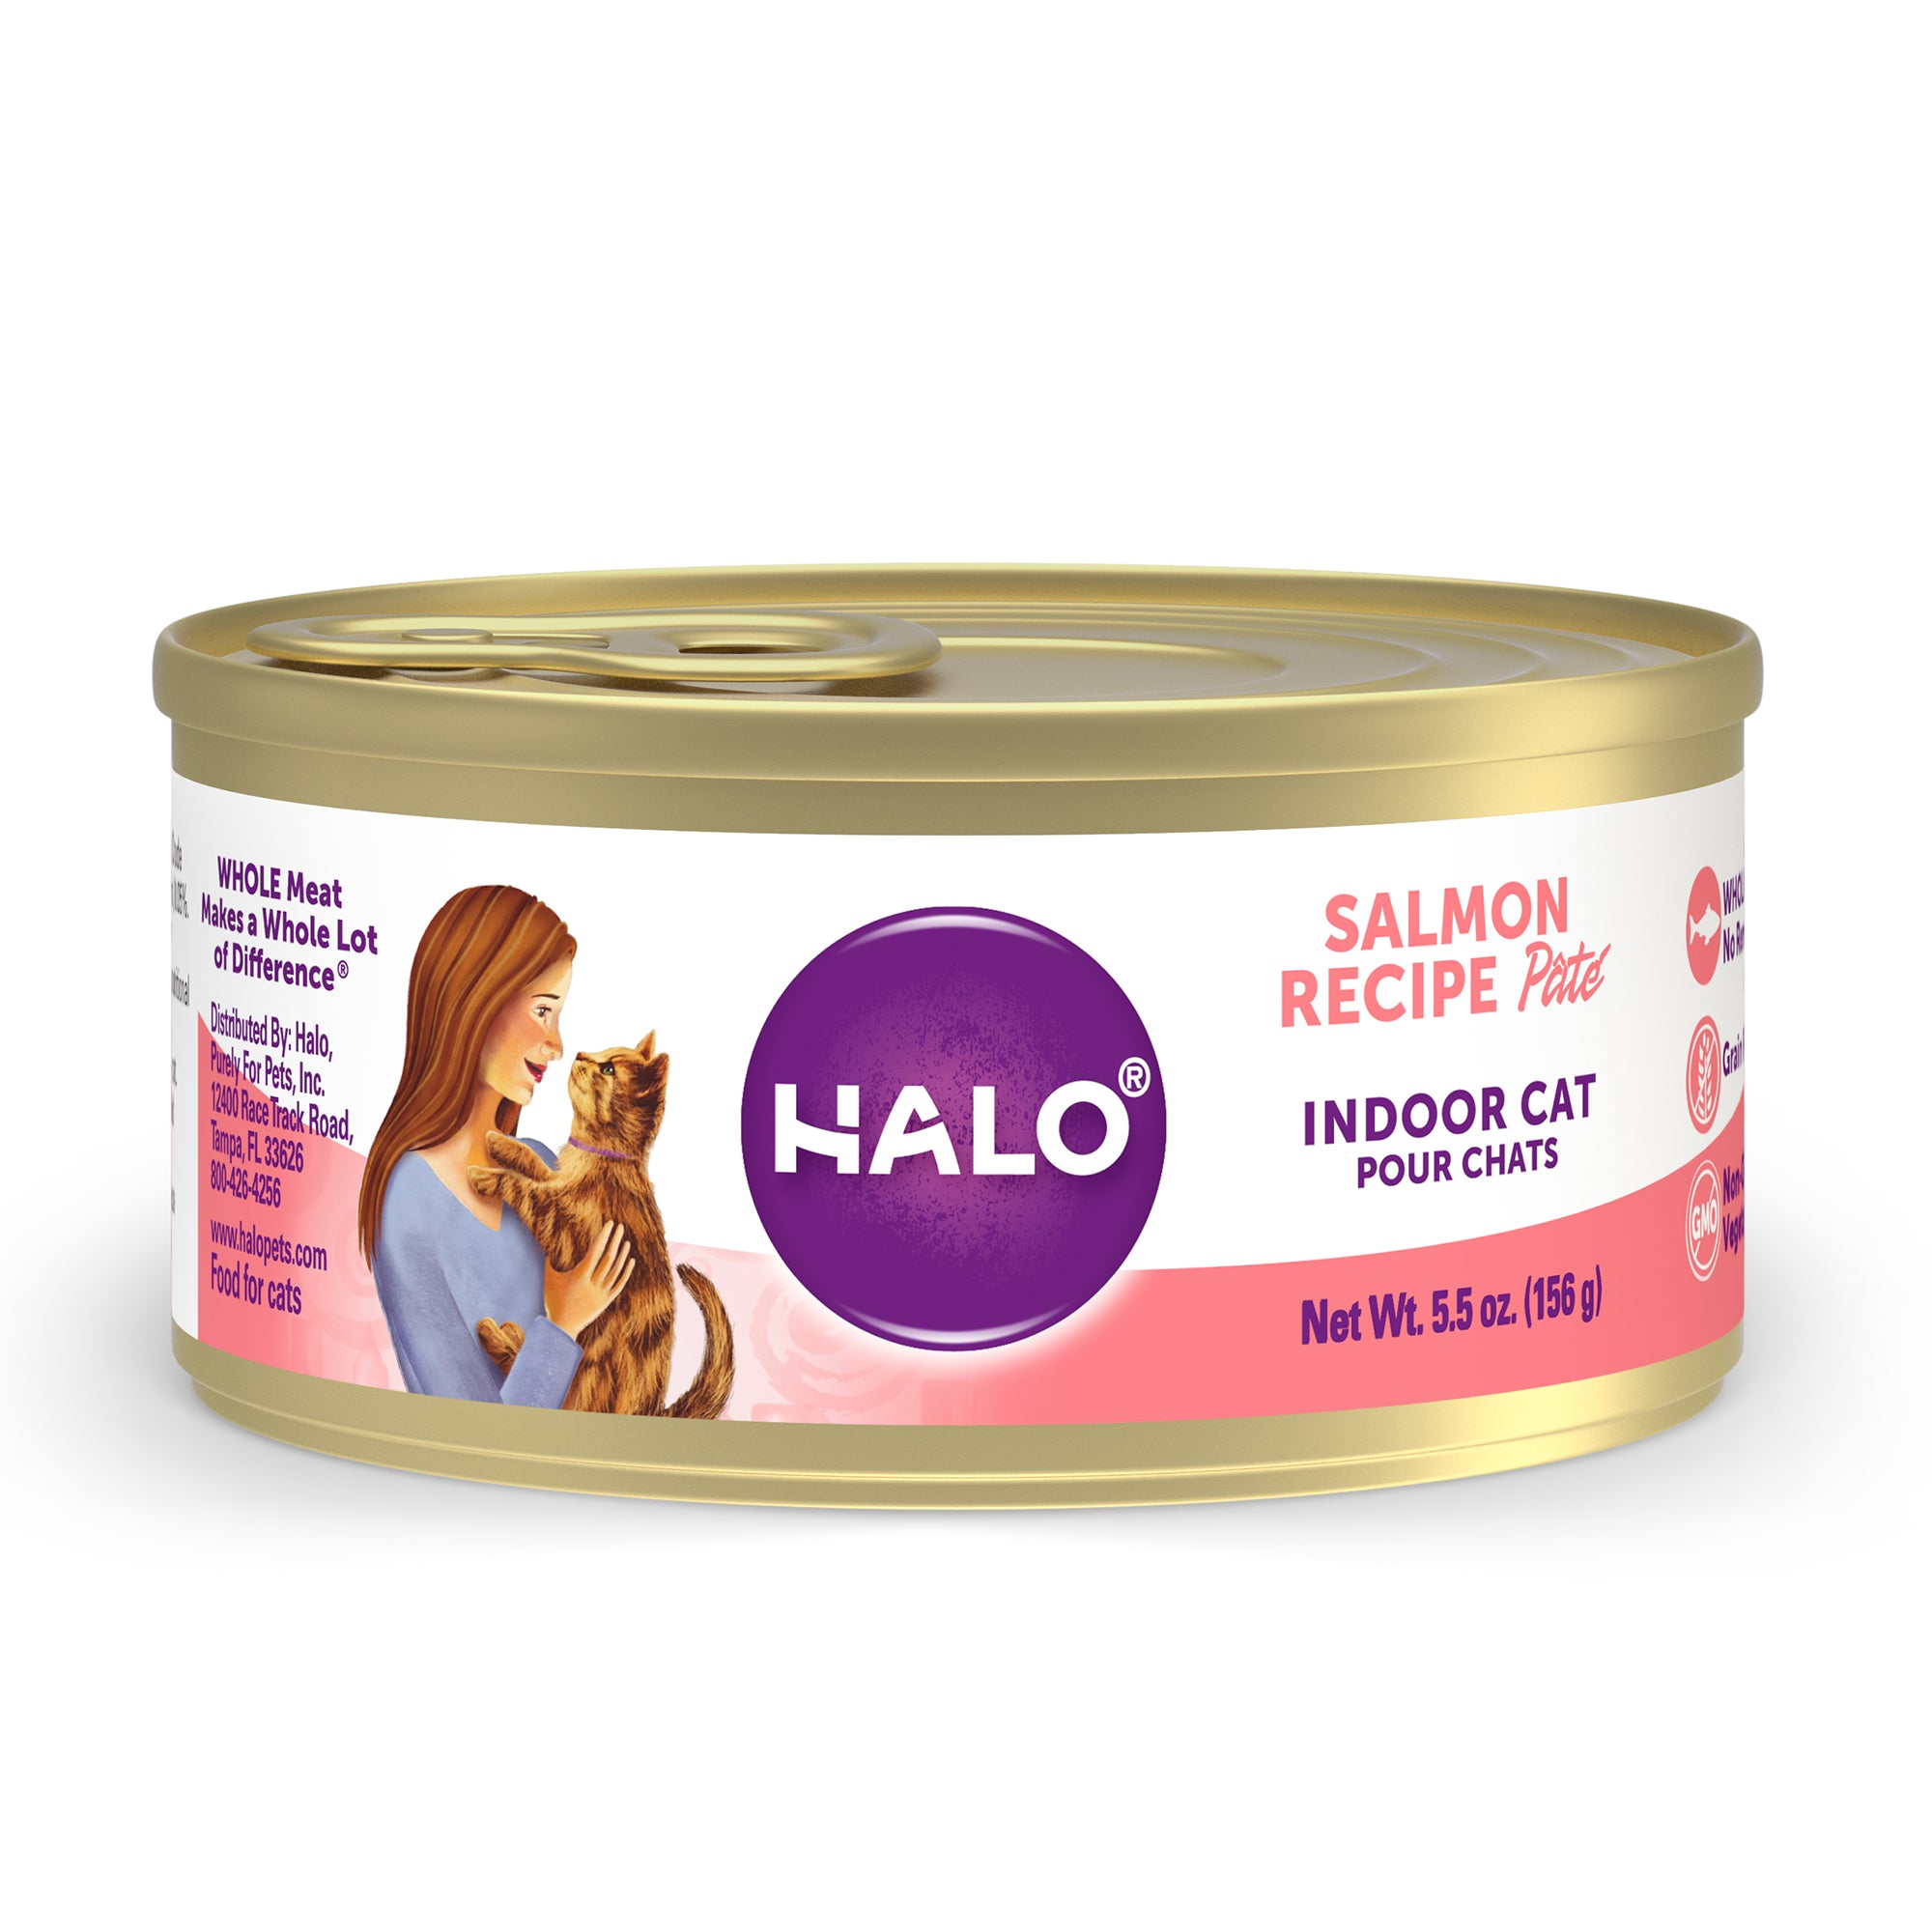 Halo Indoor Cat - Grain Free Salmon Recipe Pâté